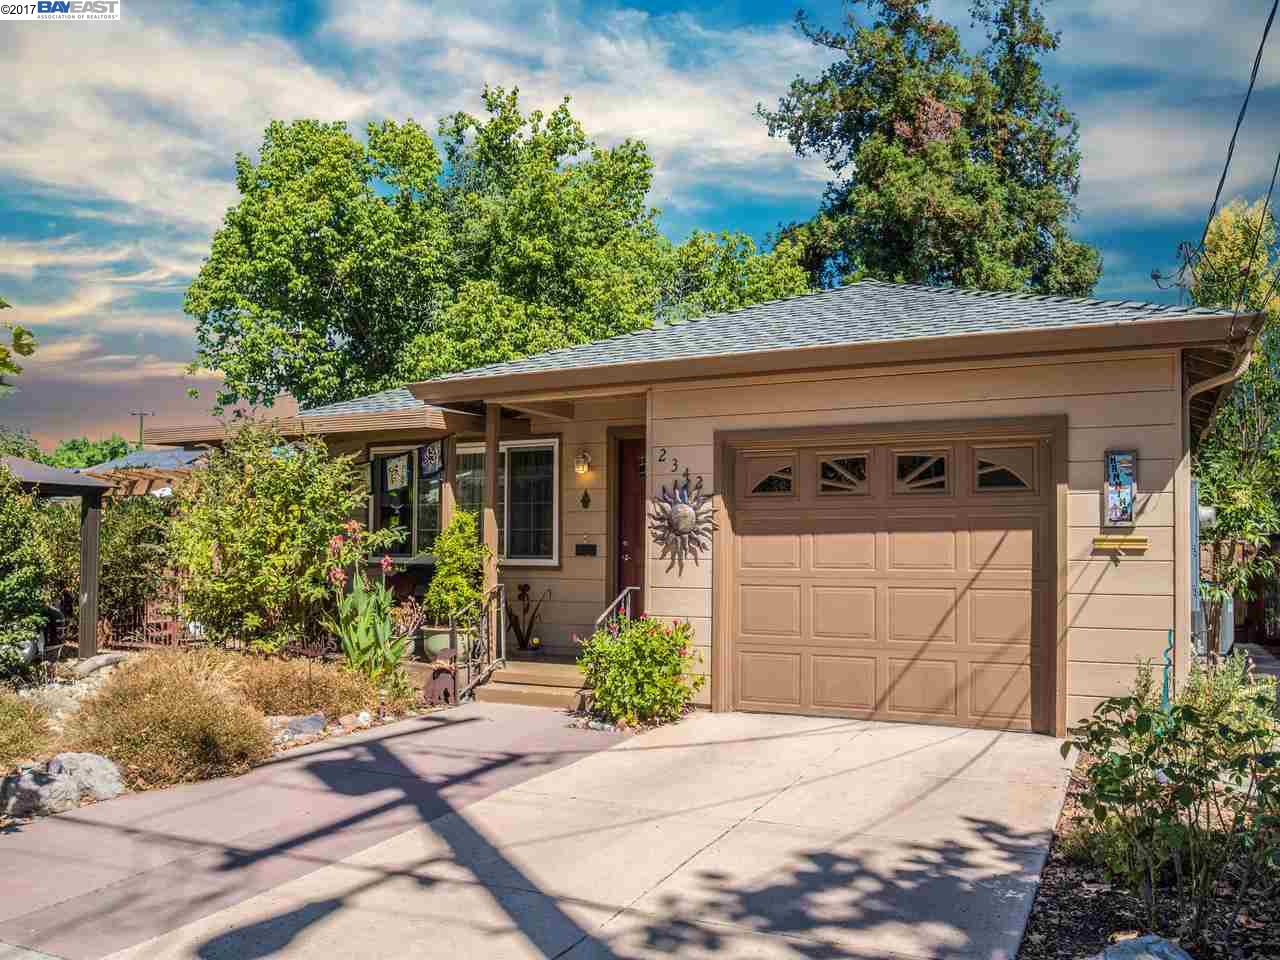 Single Family Home for Rent at 2342 7th 2342 7th Livermore, California 94550 United States